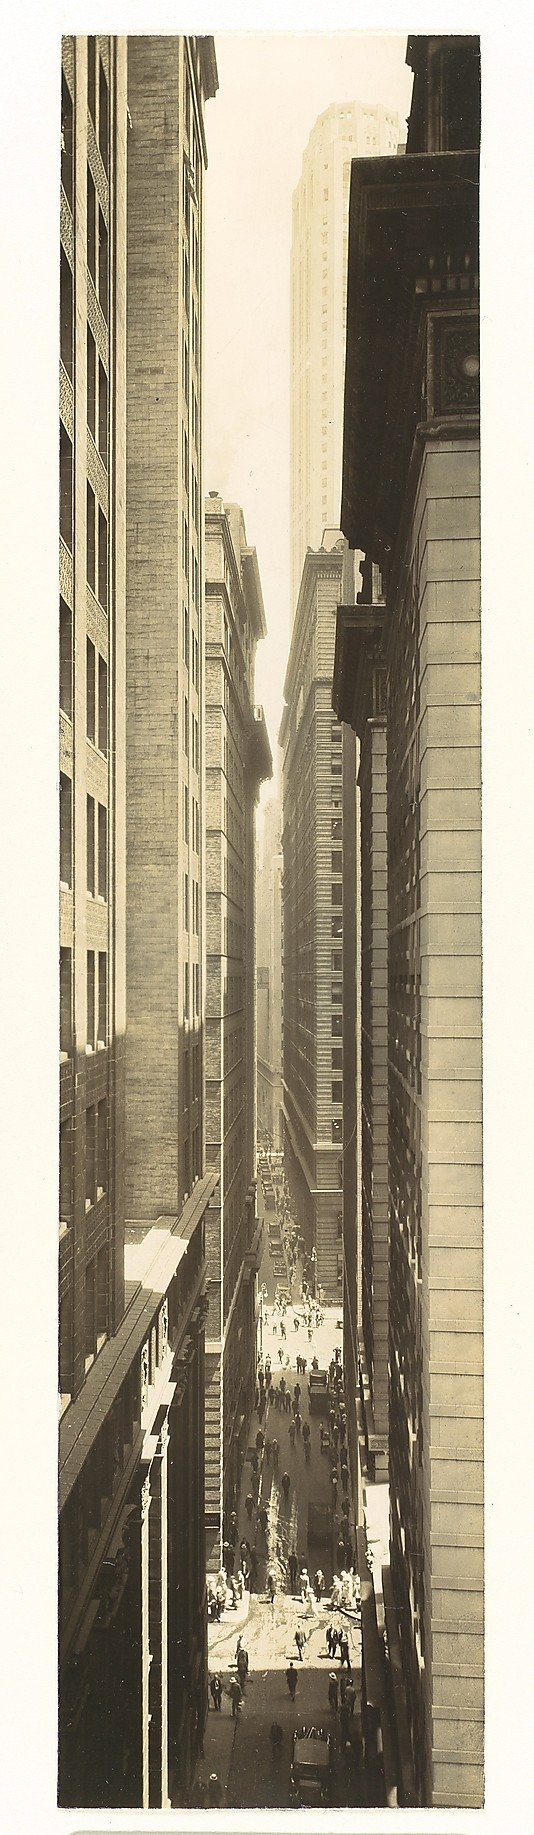 NYC Exchange Place in 1933 by Berenice Abbott (the original is the property of MOMA, currently not on display)